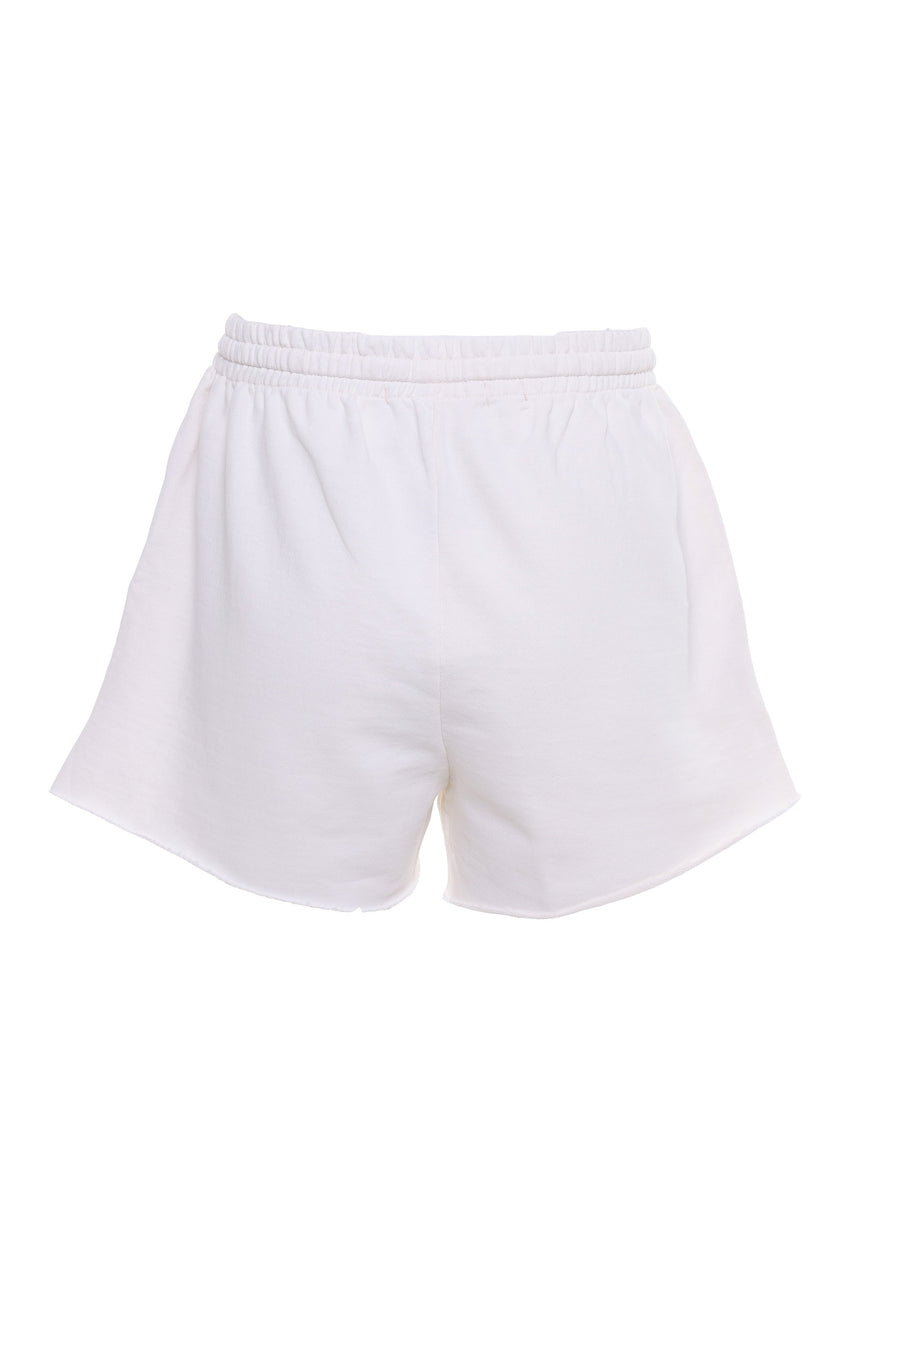 SHORTS MOLETOM OFF WHITE